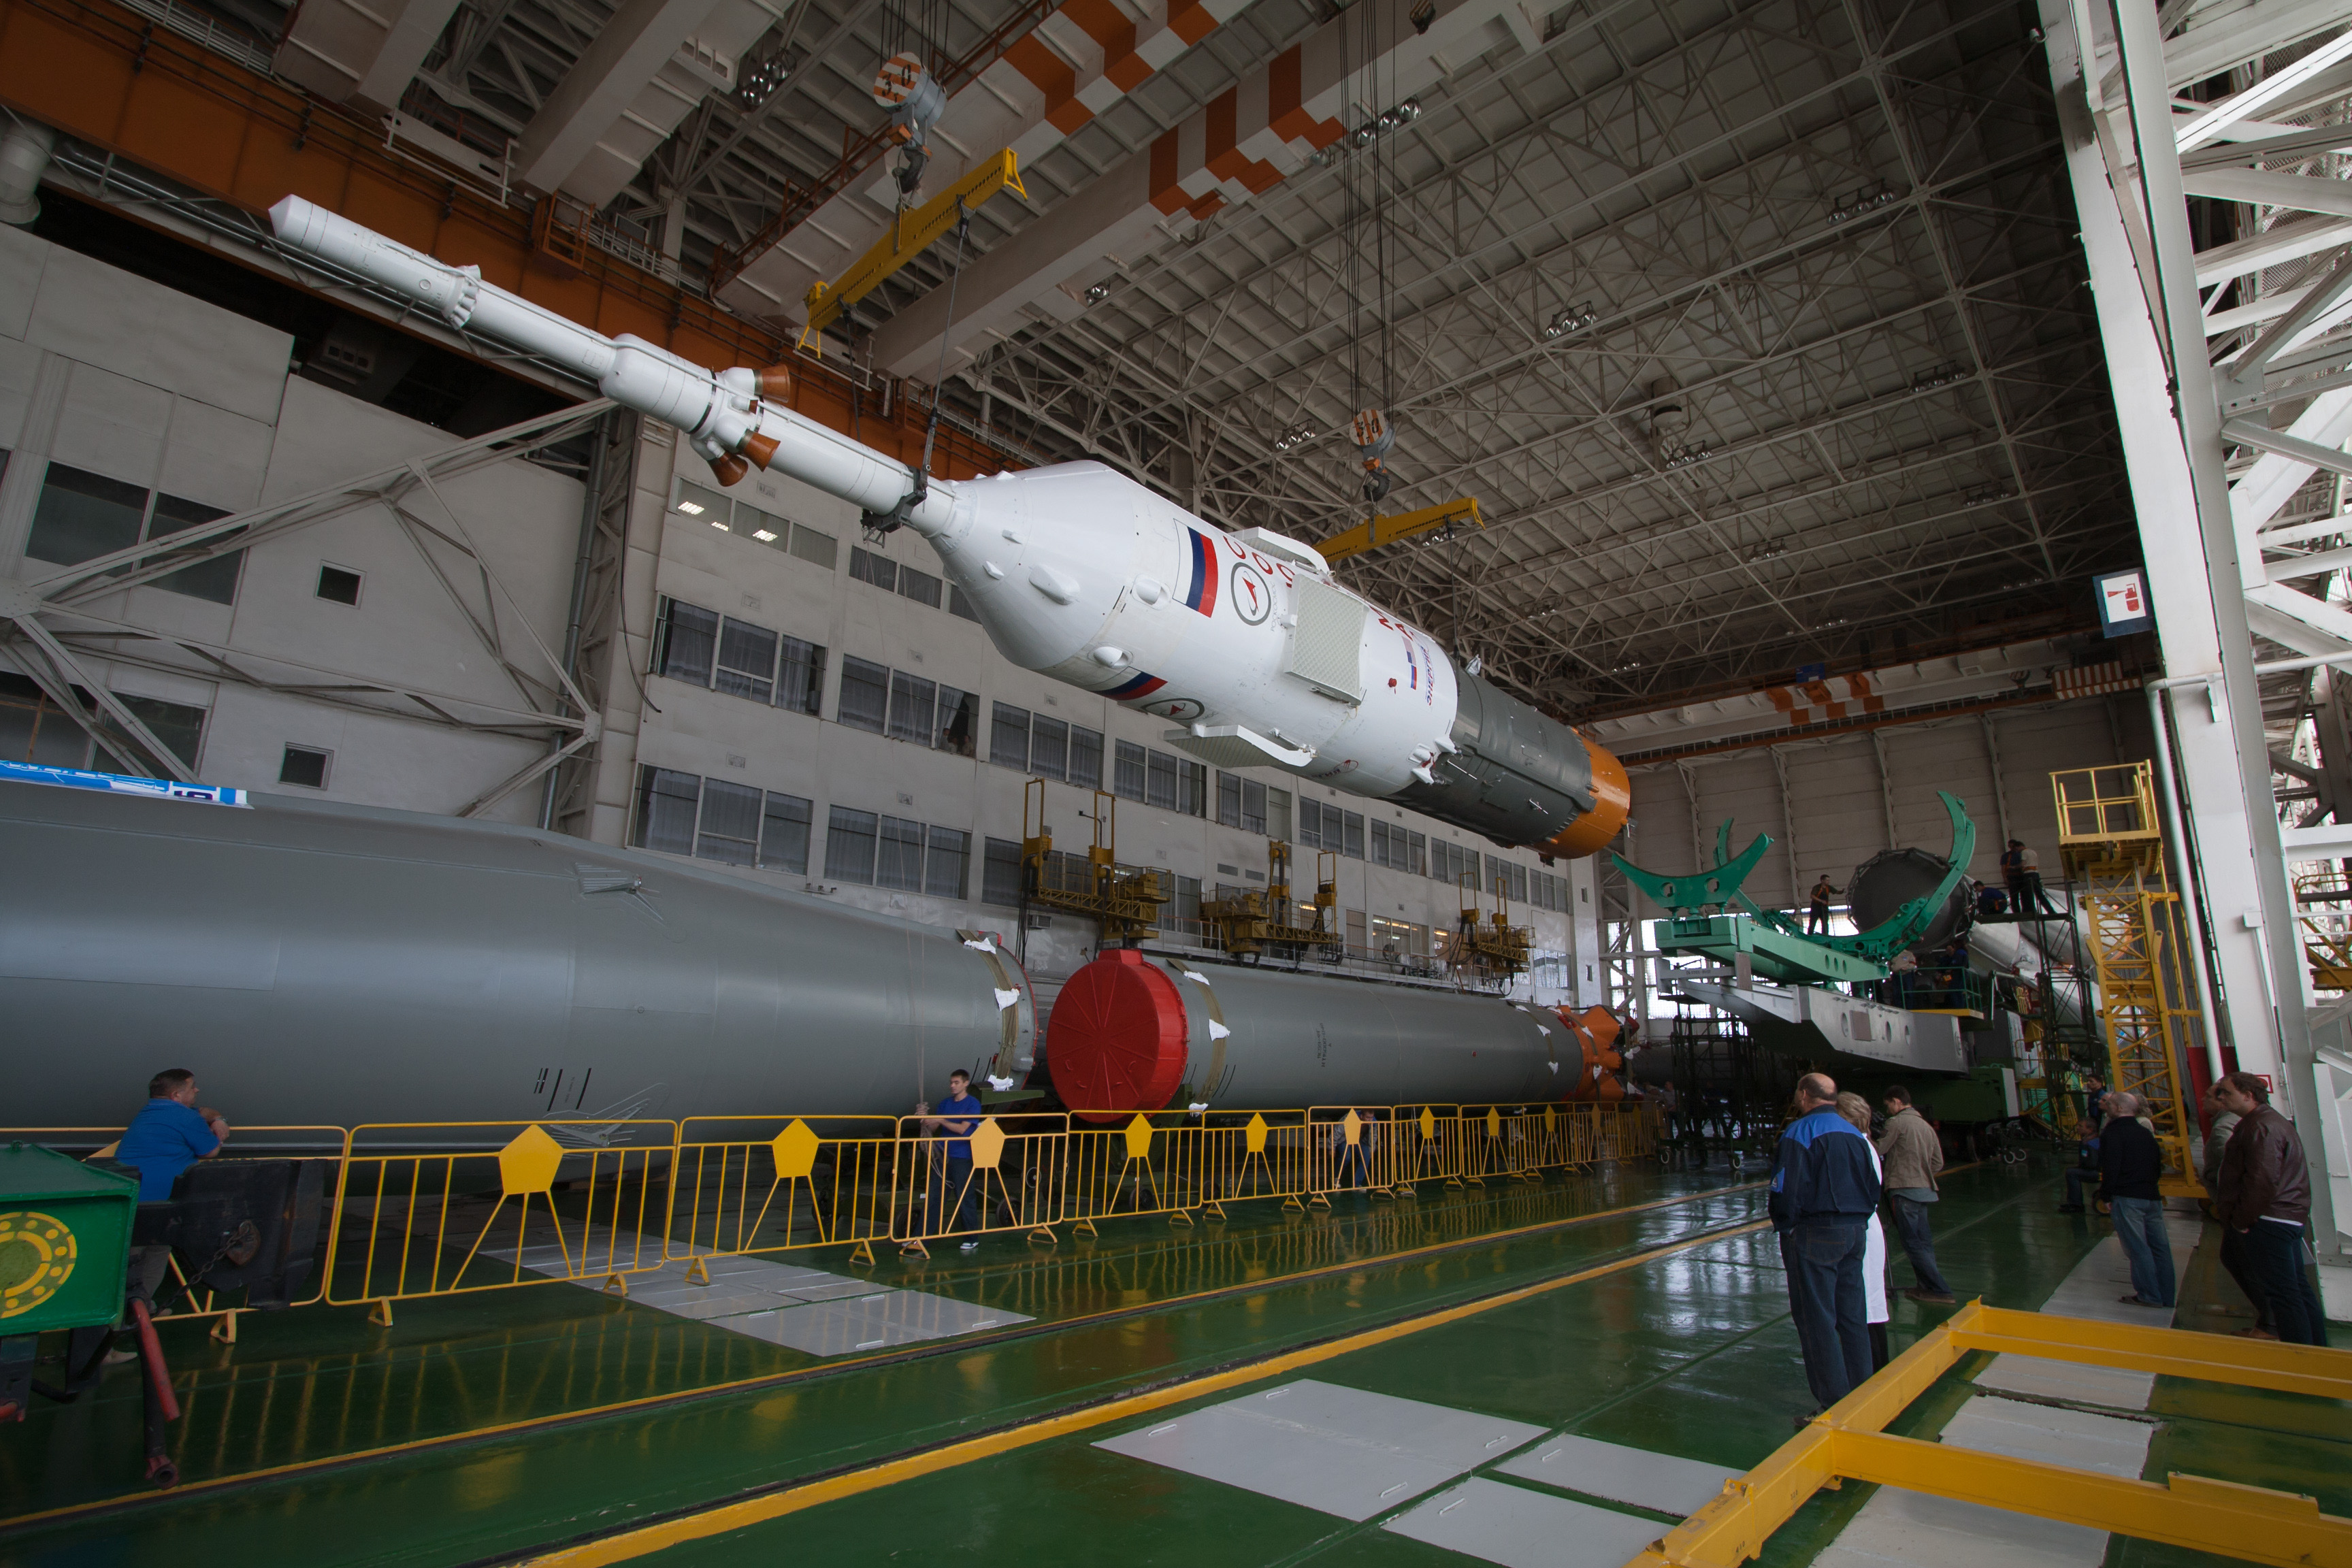 Expedition 37: Soyuz Rocket and Soyuz TMA-10M Spacecraft Assembly